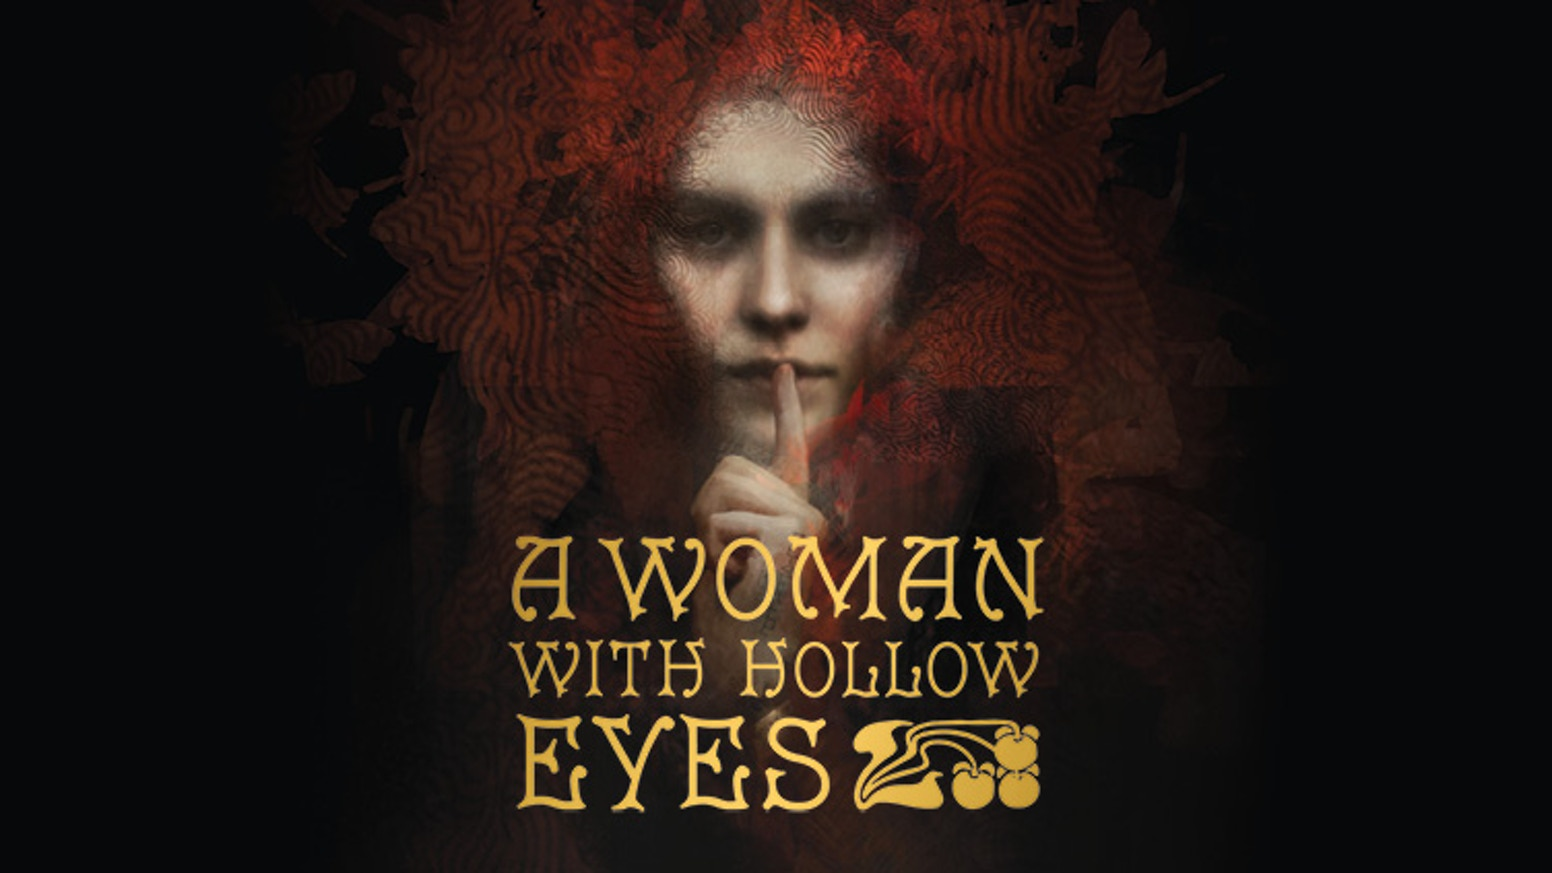 Logo for A Woman with Hollow Eyes —Art Nouveau typography atop a painterly image of an enigmatic woman shushing with a single finger to her mouth.